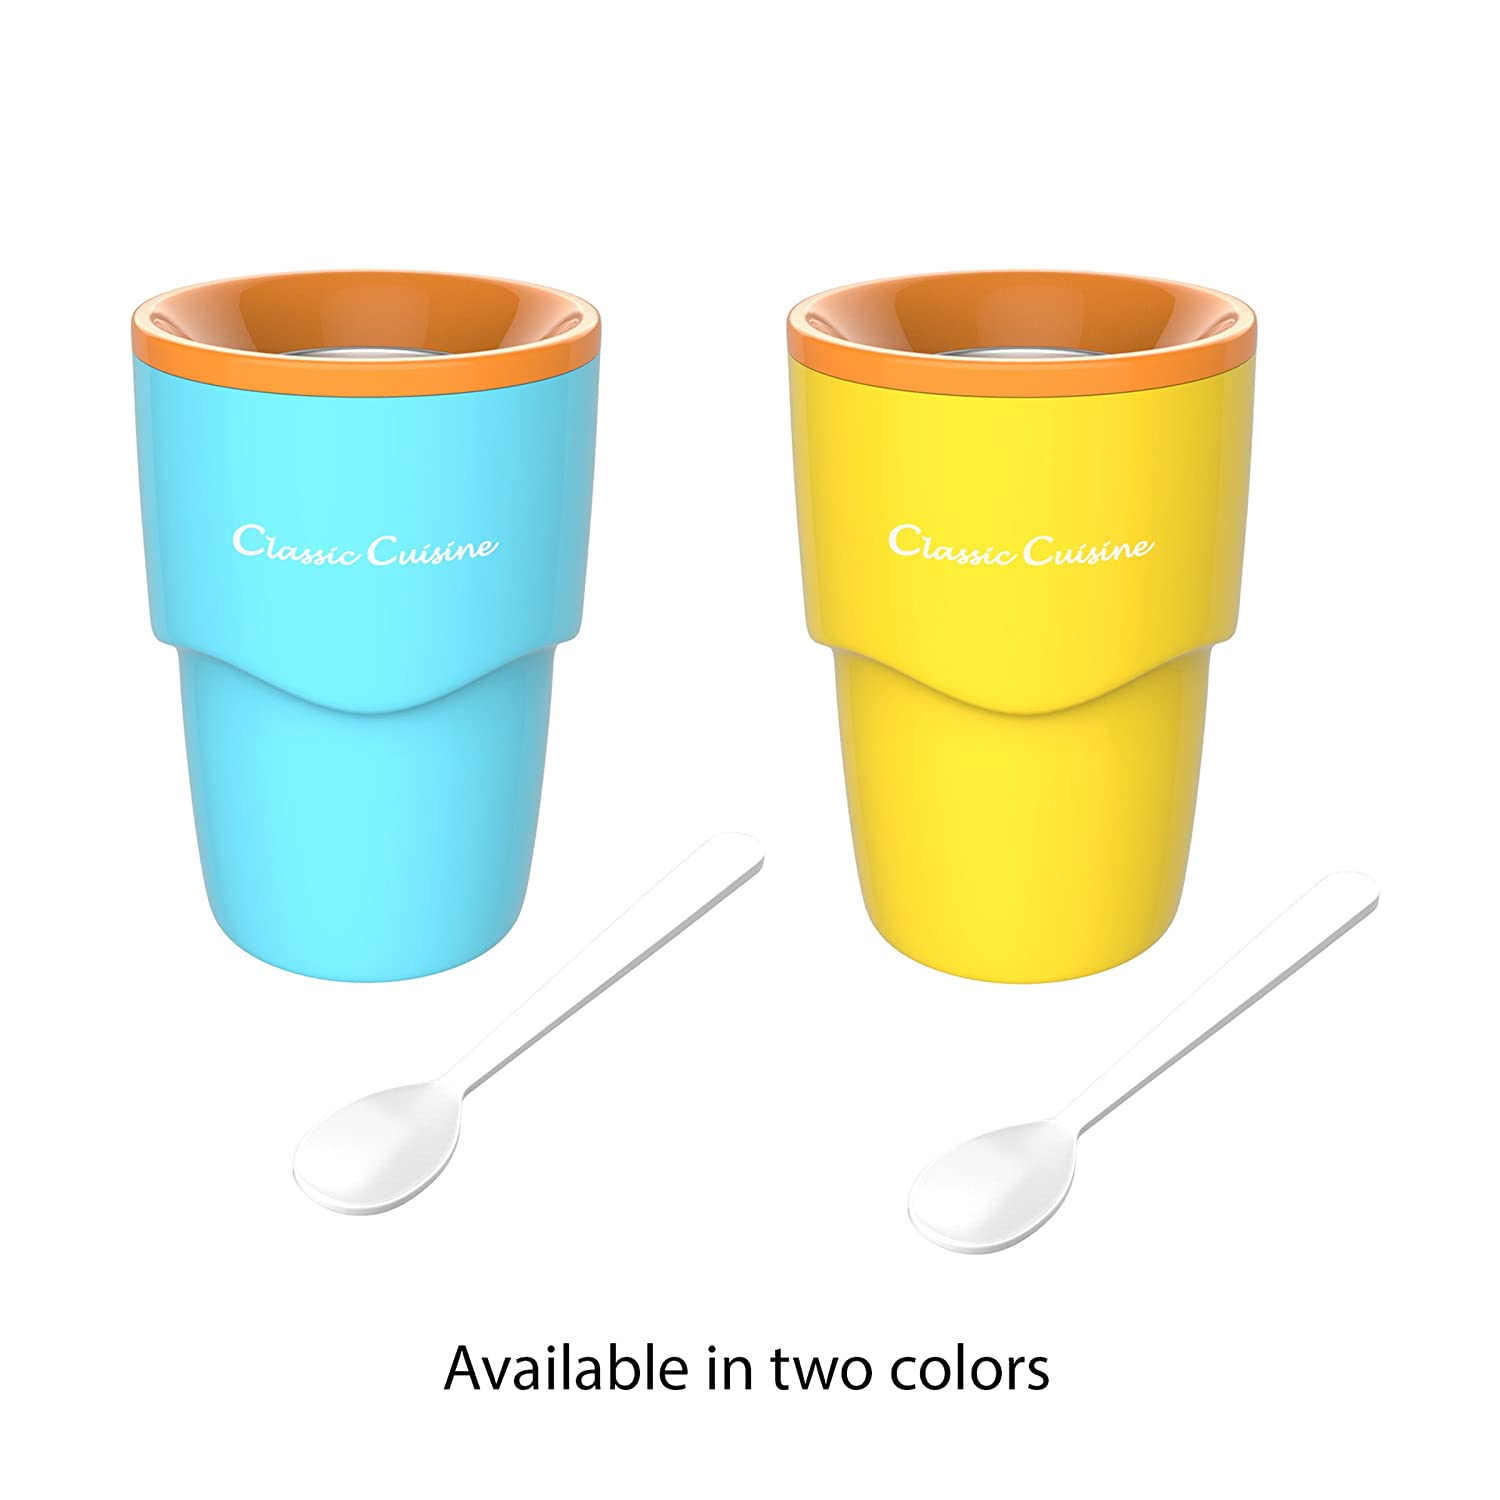 Slushy Maker-Single Serving Frozen Treat Cup for Easy to Make Homemade Slushes and More by Classic Cuisine Milkshakes Cocktails Smoothies Blue